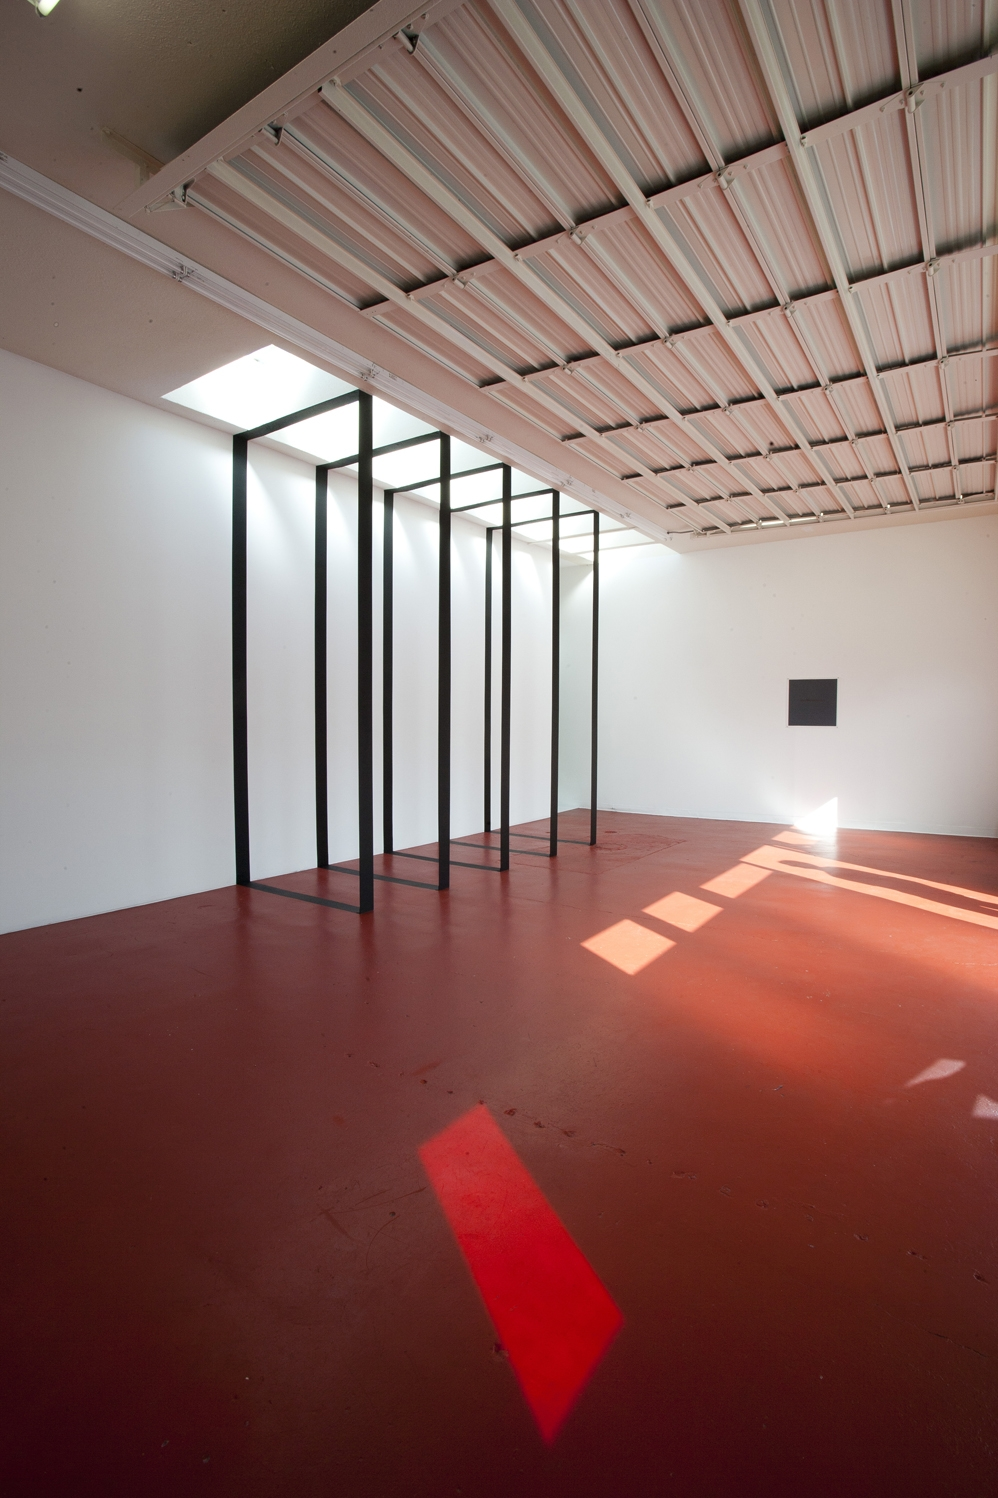 5 Black Rectangles, Compact Gallery, 2011 - Photo: Steve E. Miller